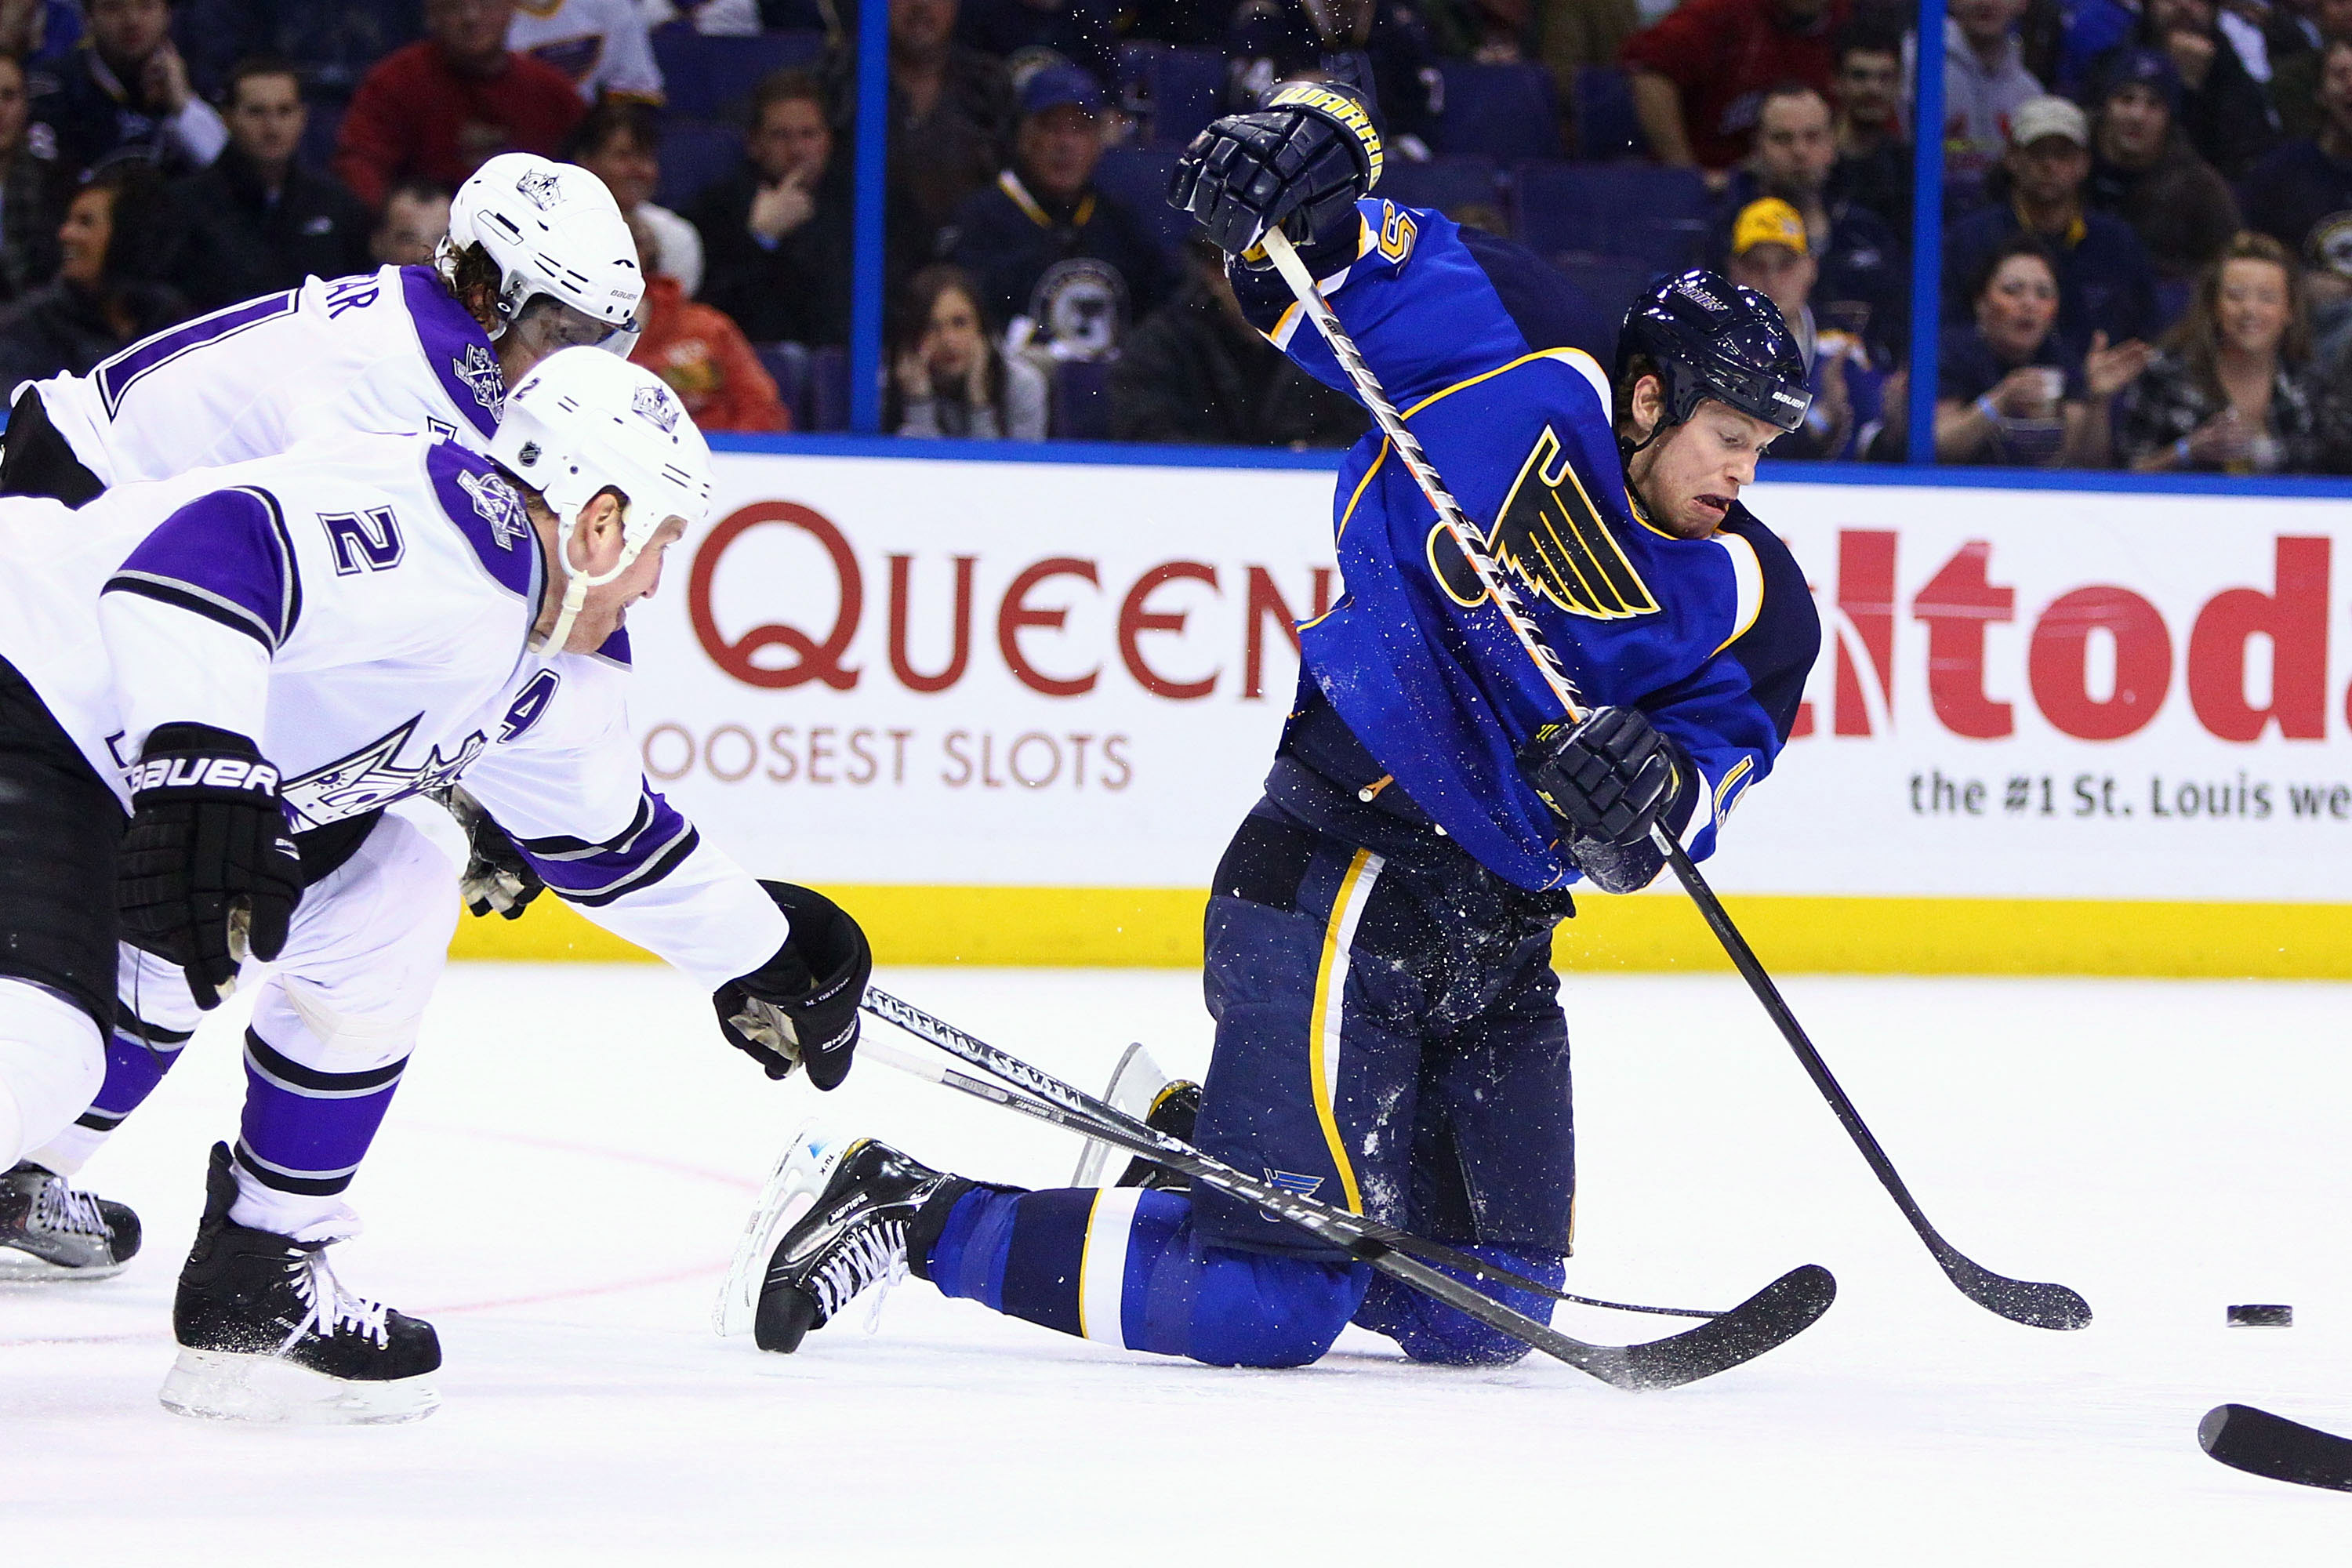 ST. LOUIS, MO - JANUARY 18: Brad Winchester #15 of the St. Louis Blues passes the puck against the Los Angeles Kings at the Scottrade Center on January 18, 2011 in St. Louis, Missouri.  (Photo by Dilip Vishwanat/Getty Images)